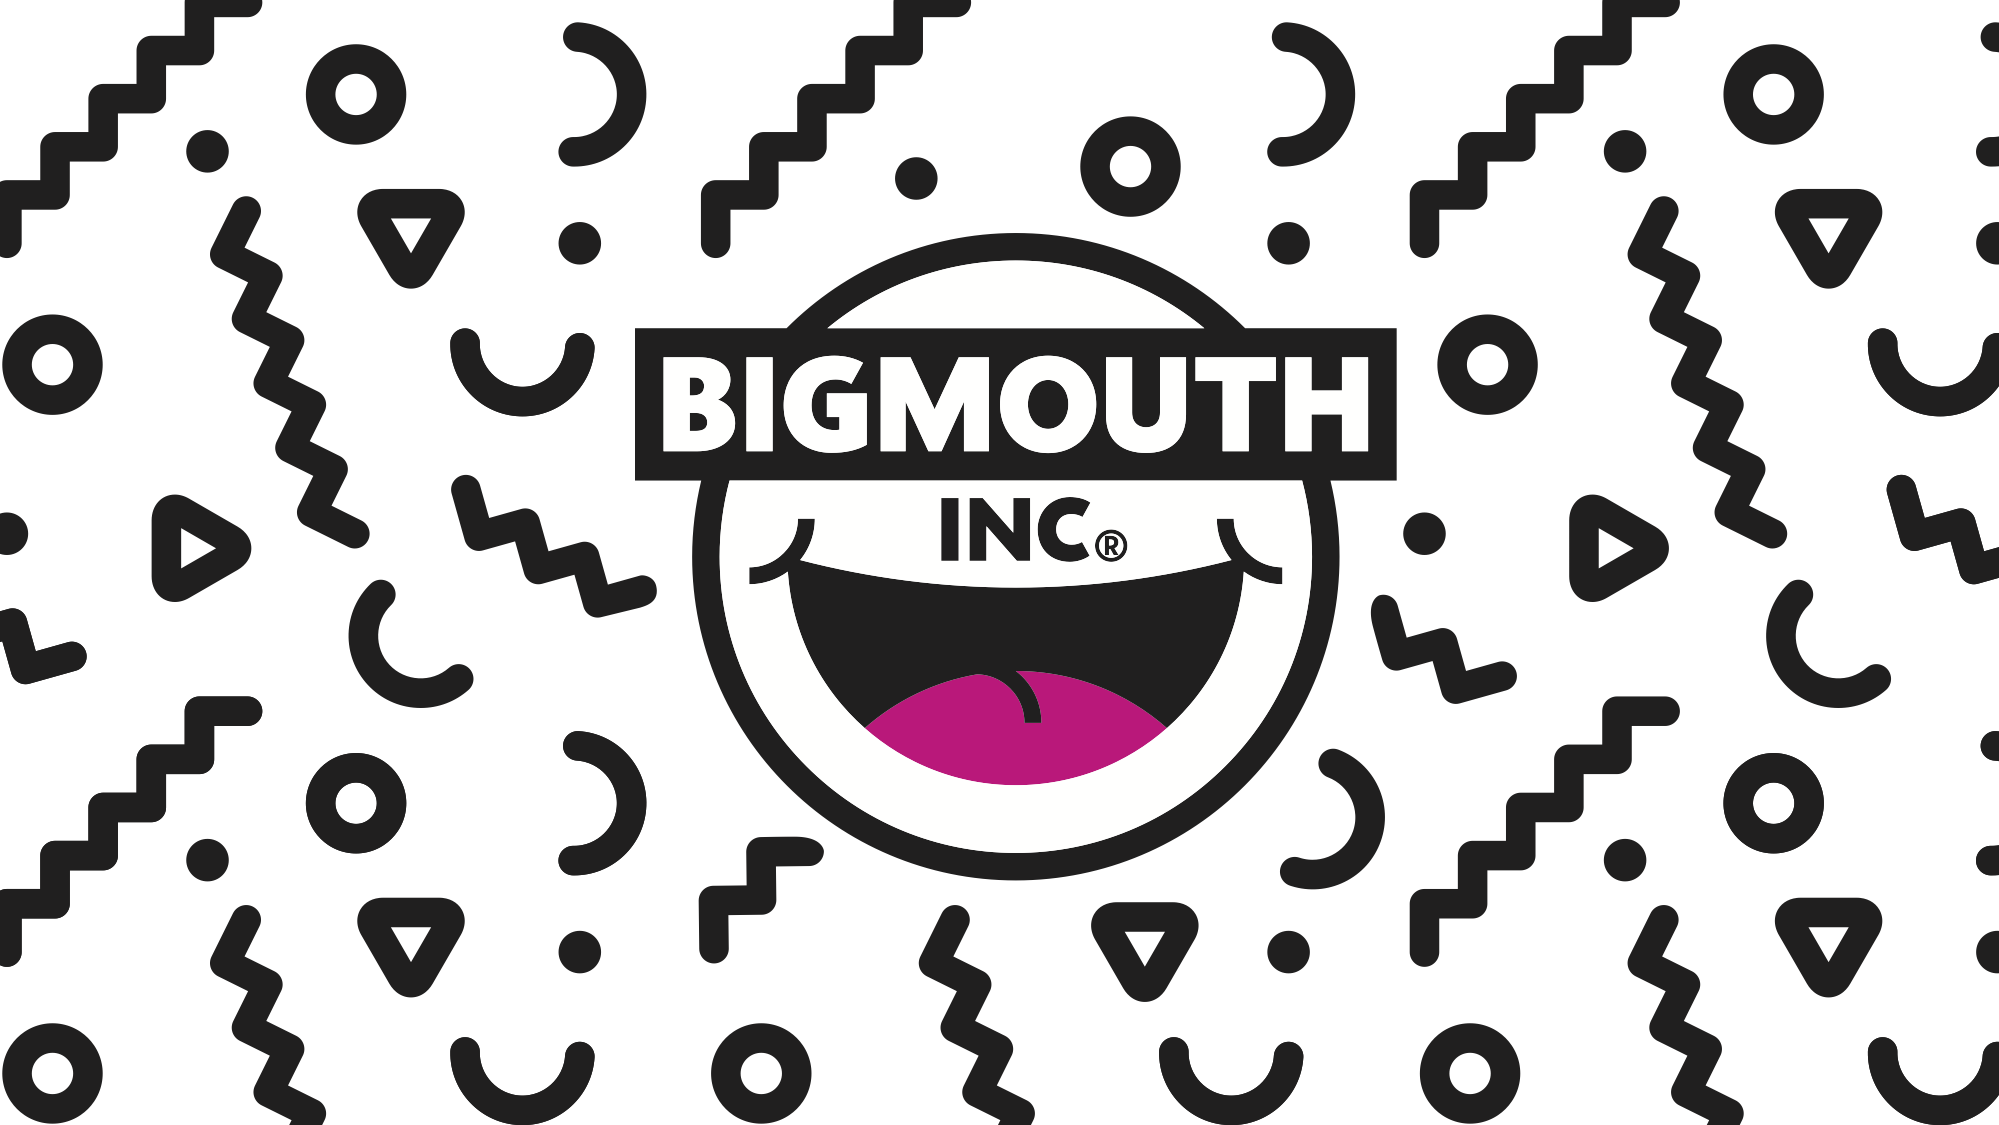 Miller Distributors Ltd appointed Local Distributor for BigMouth Inc.